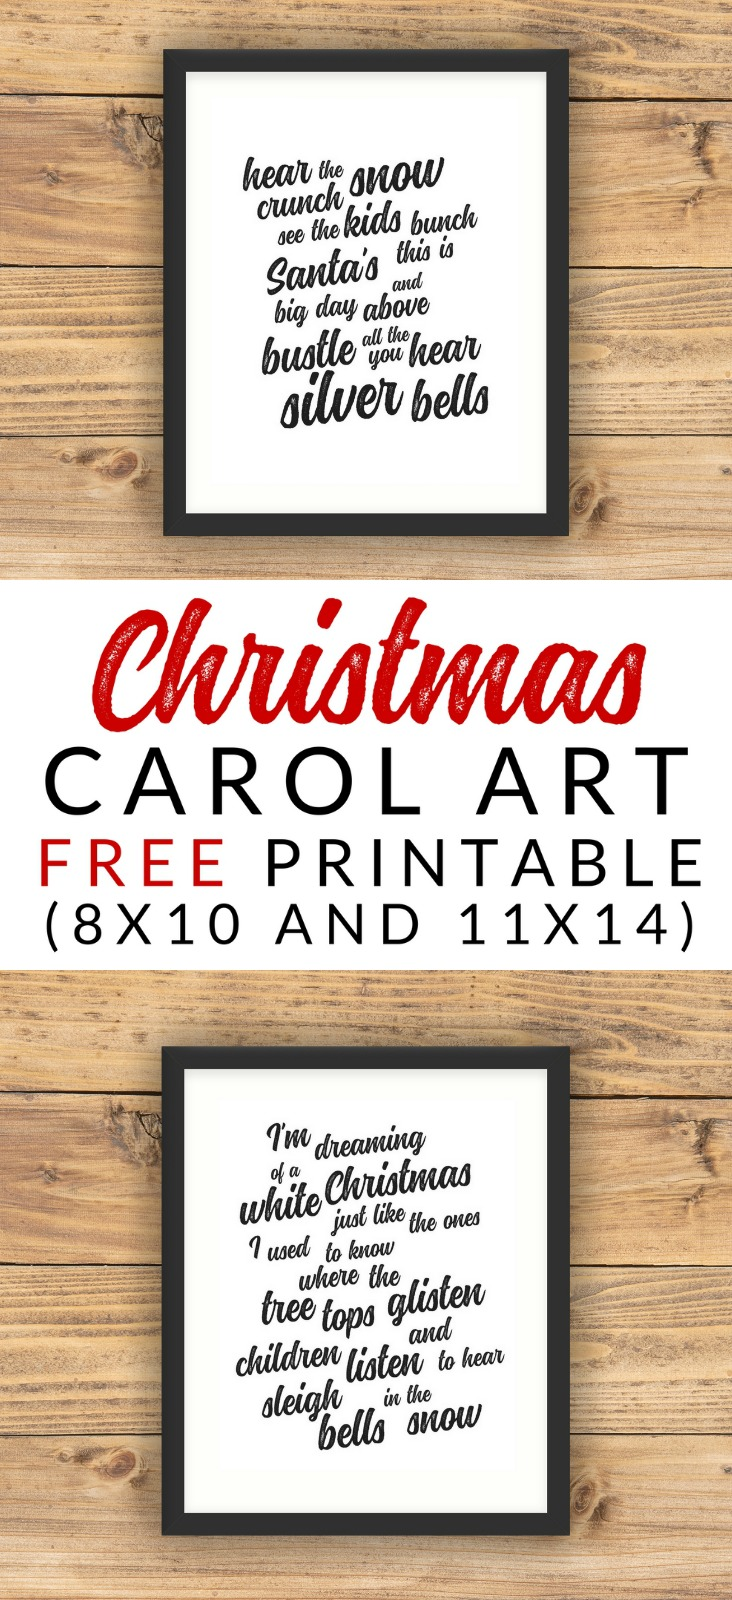 Christmas carol art free christmas printables the crazy craft lady these free printable christmas carol art prints would make a fantastic addition to any holiday gallery stopboris Images